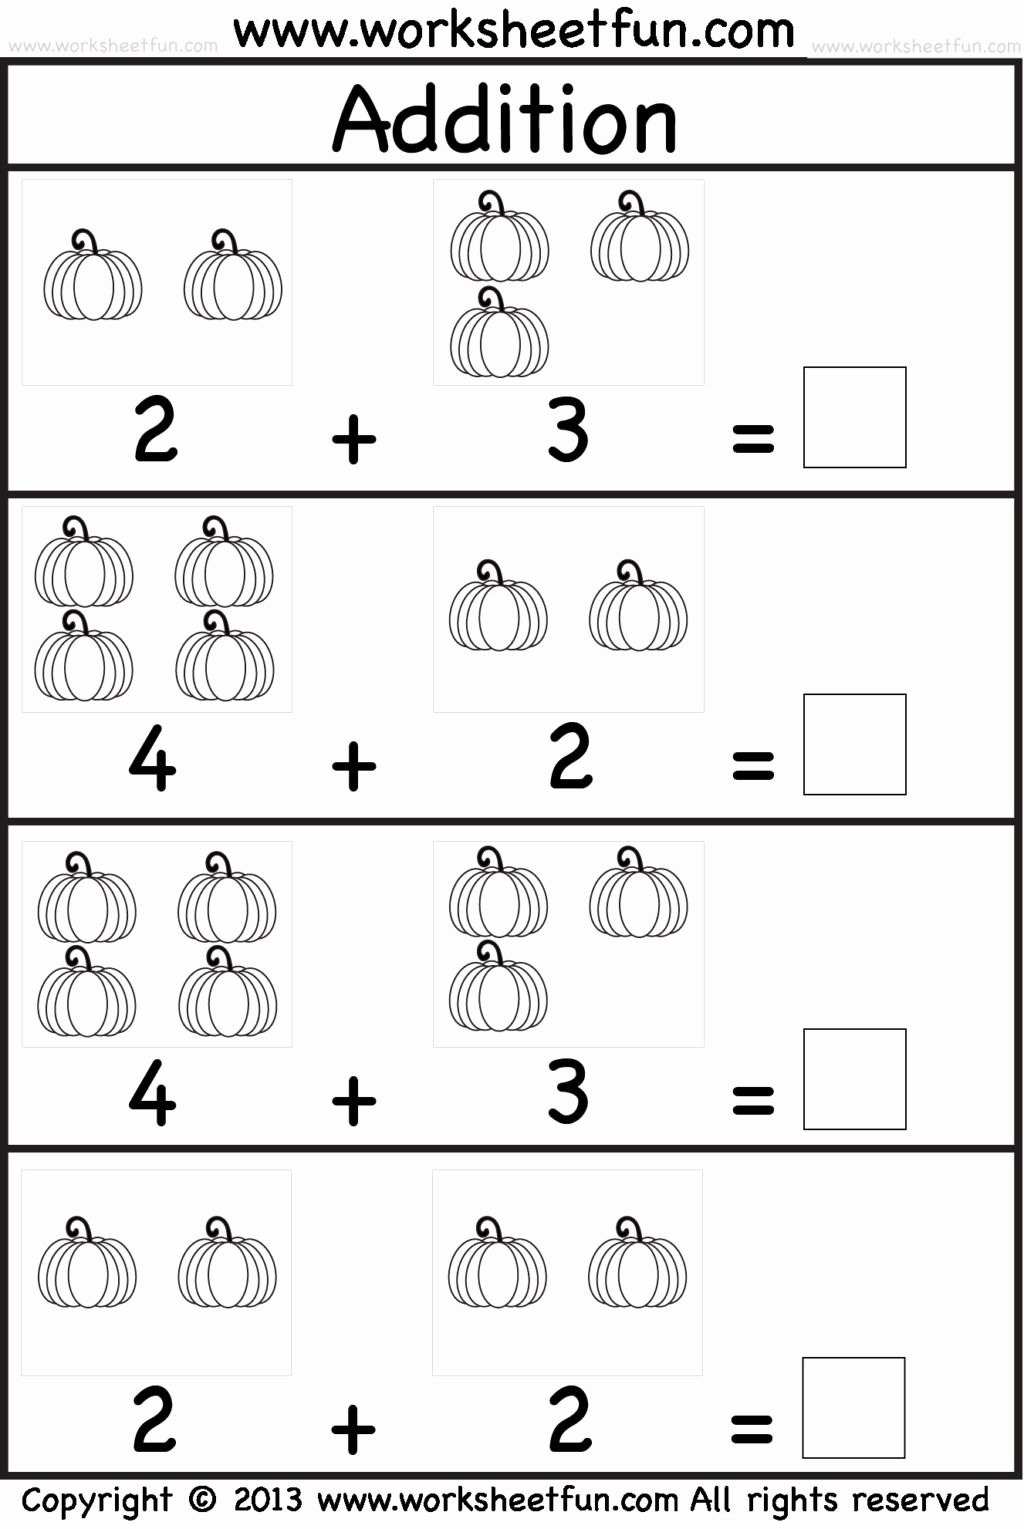 Printable Fraction Worksheets for Preschoolers Lovely Worksheet Worksheet Phenomenal Activity for Preschool